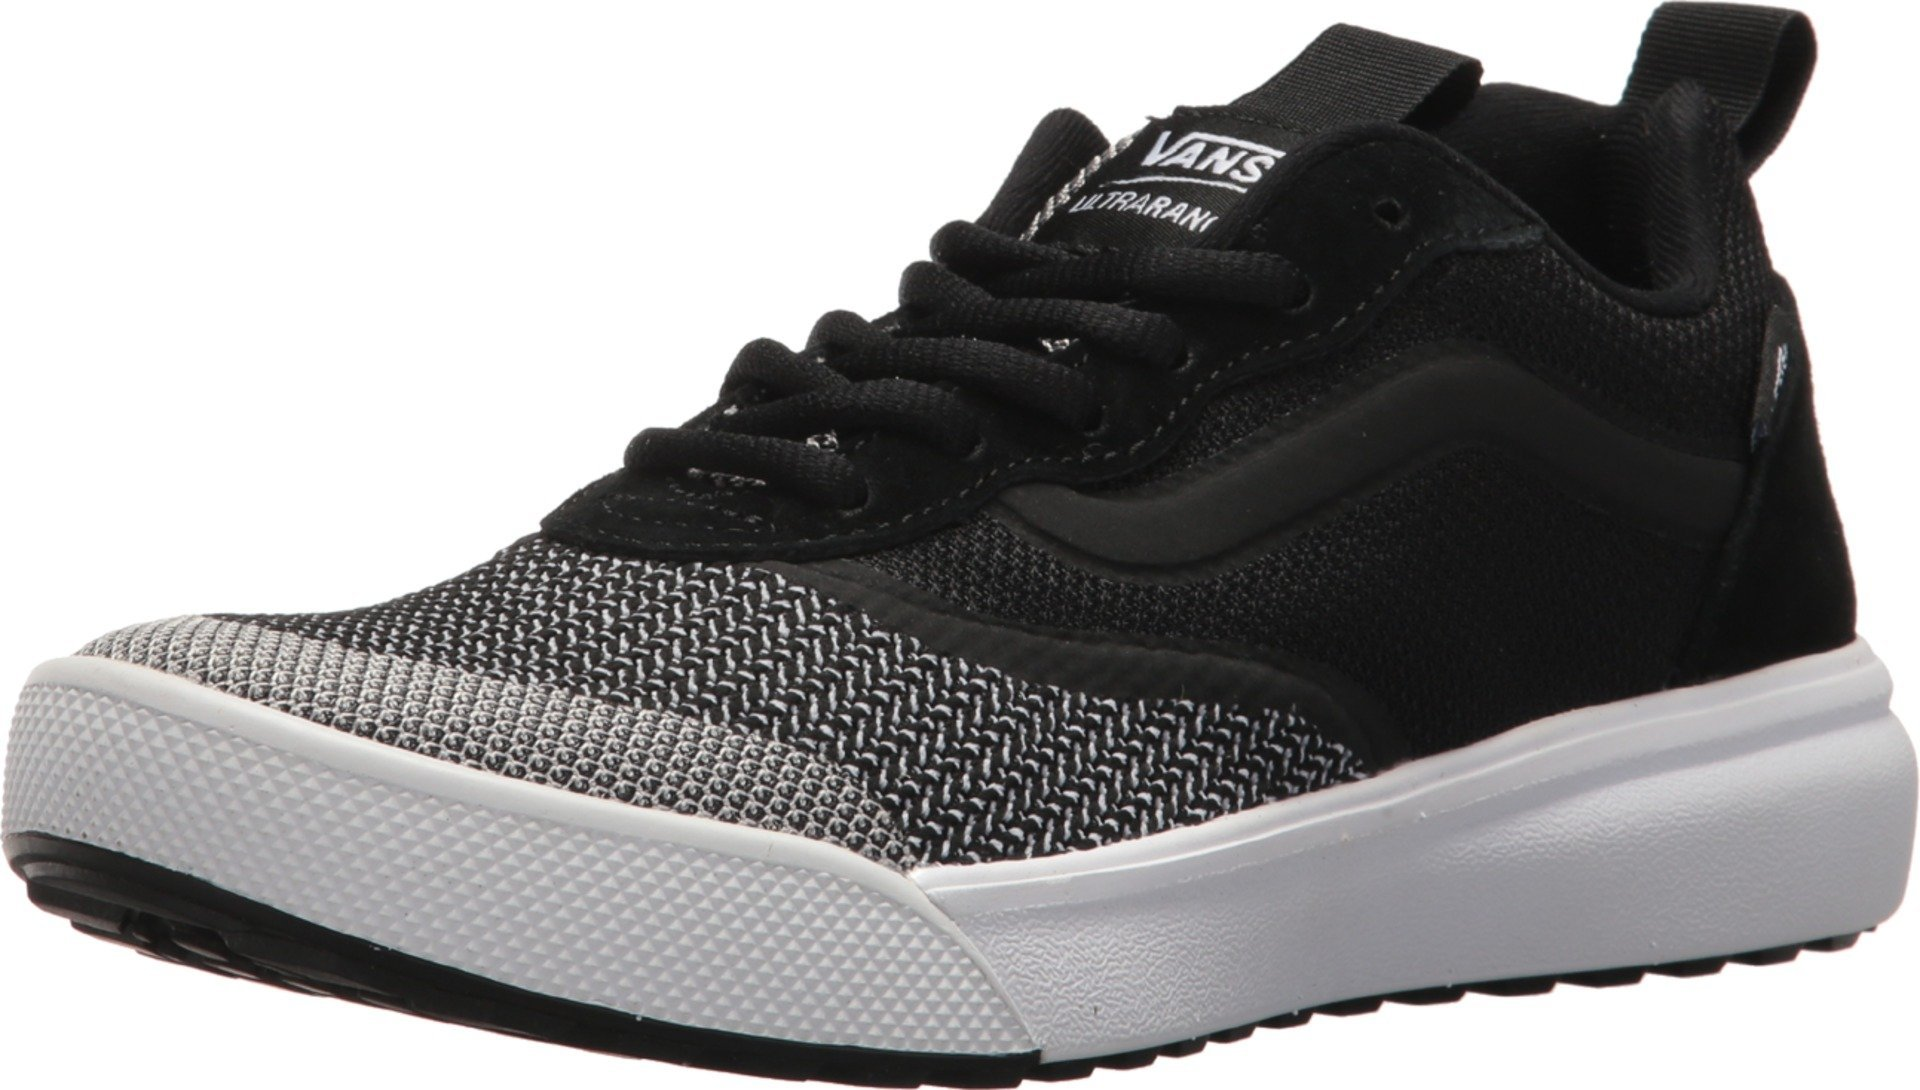 Vans Unisex UA Ultra Range DX (YC Knit) Black/True White 11 Women/9.5 Men M US